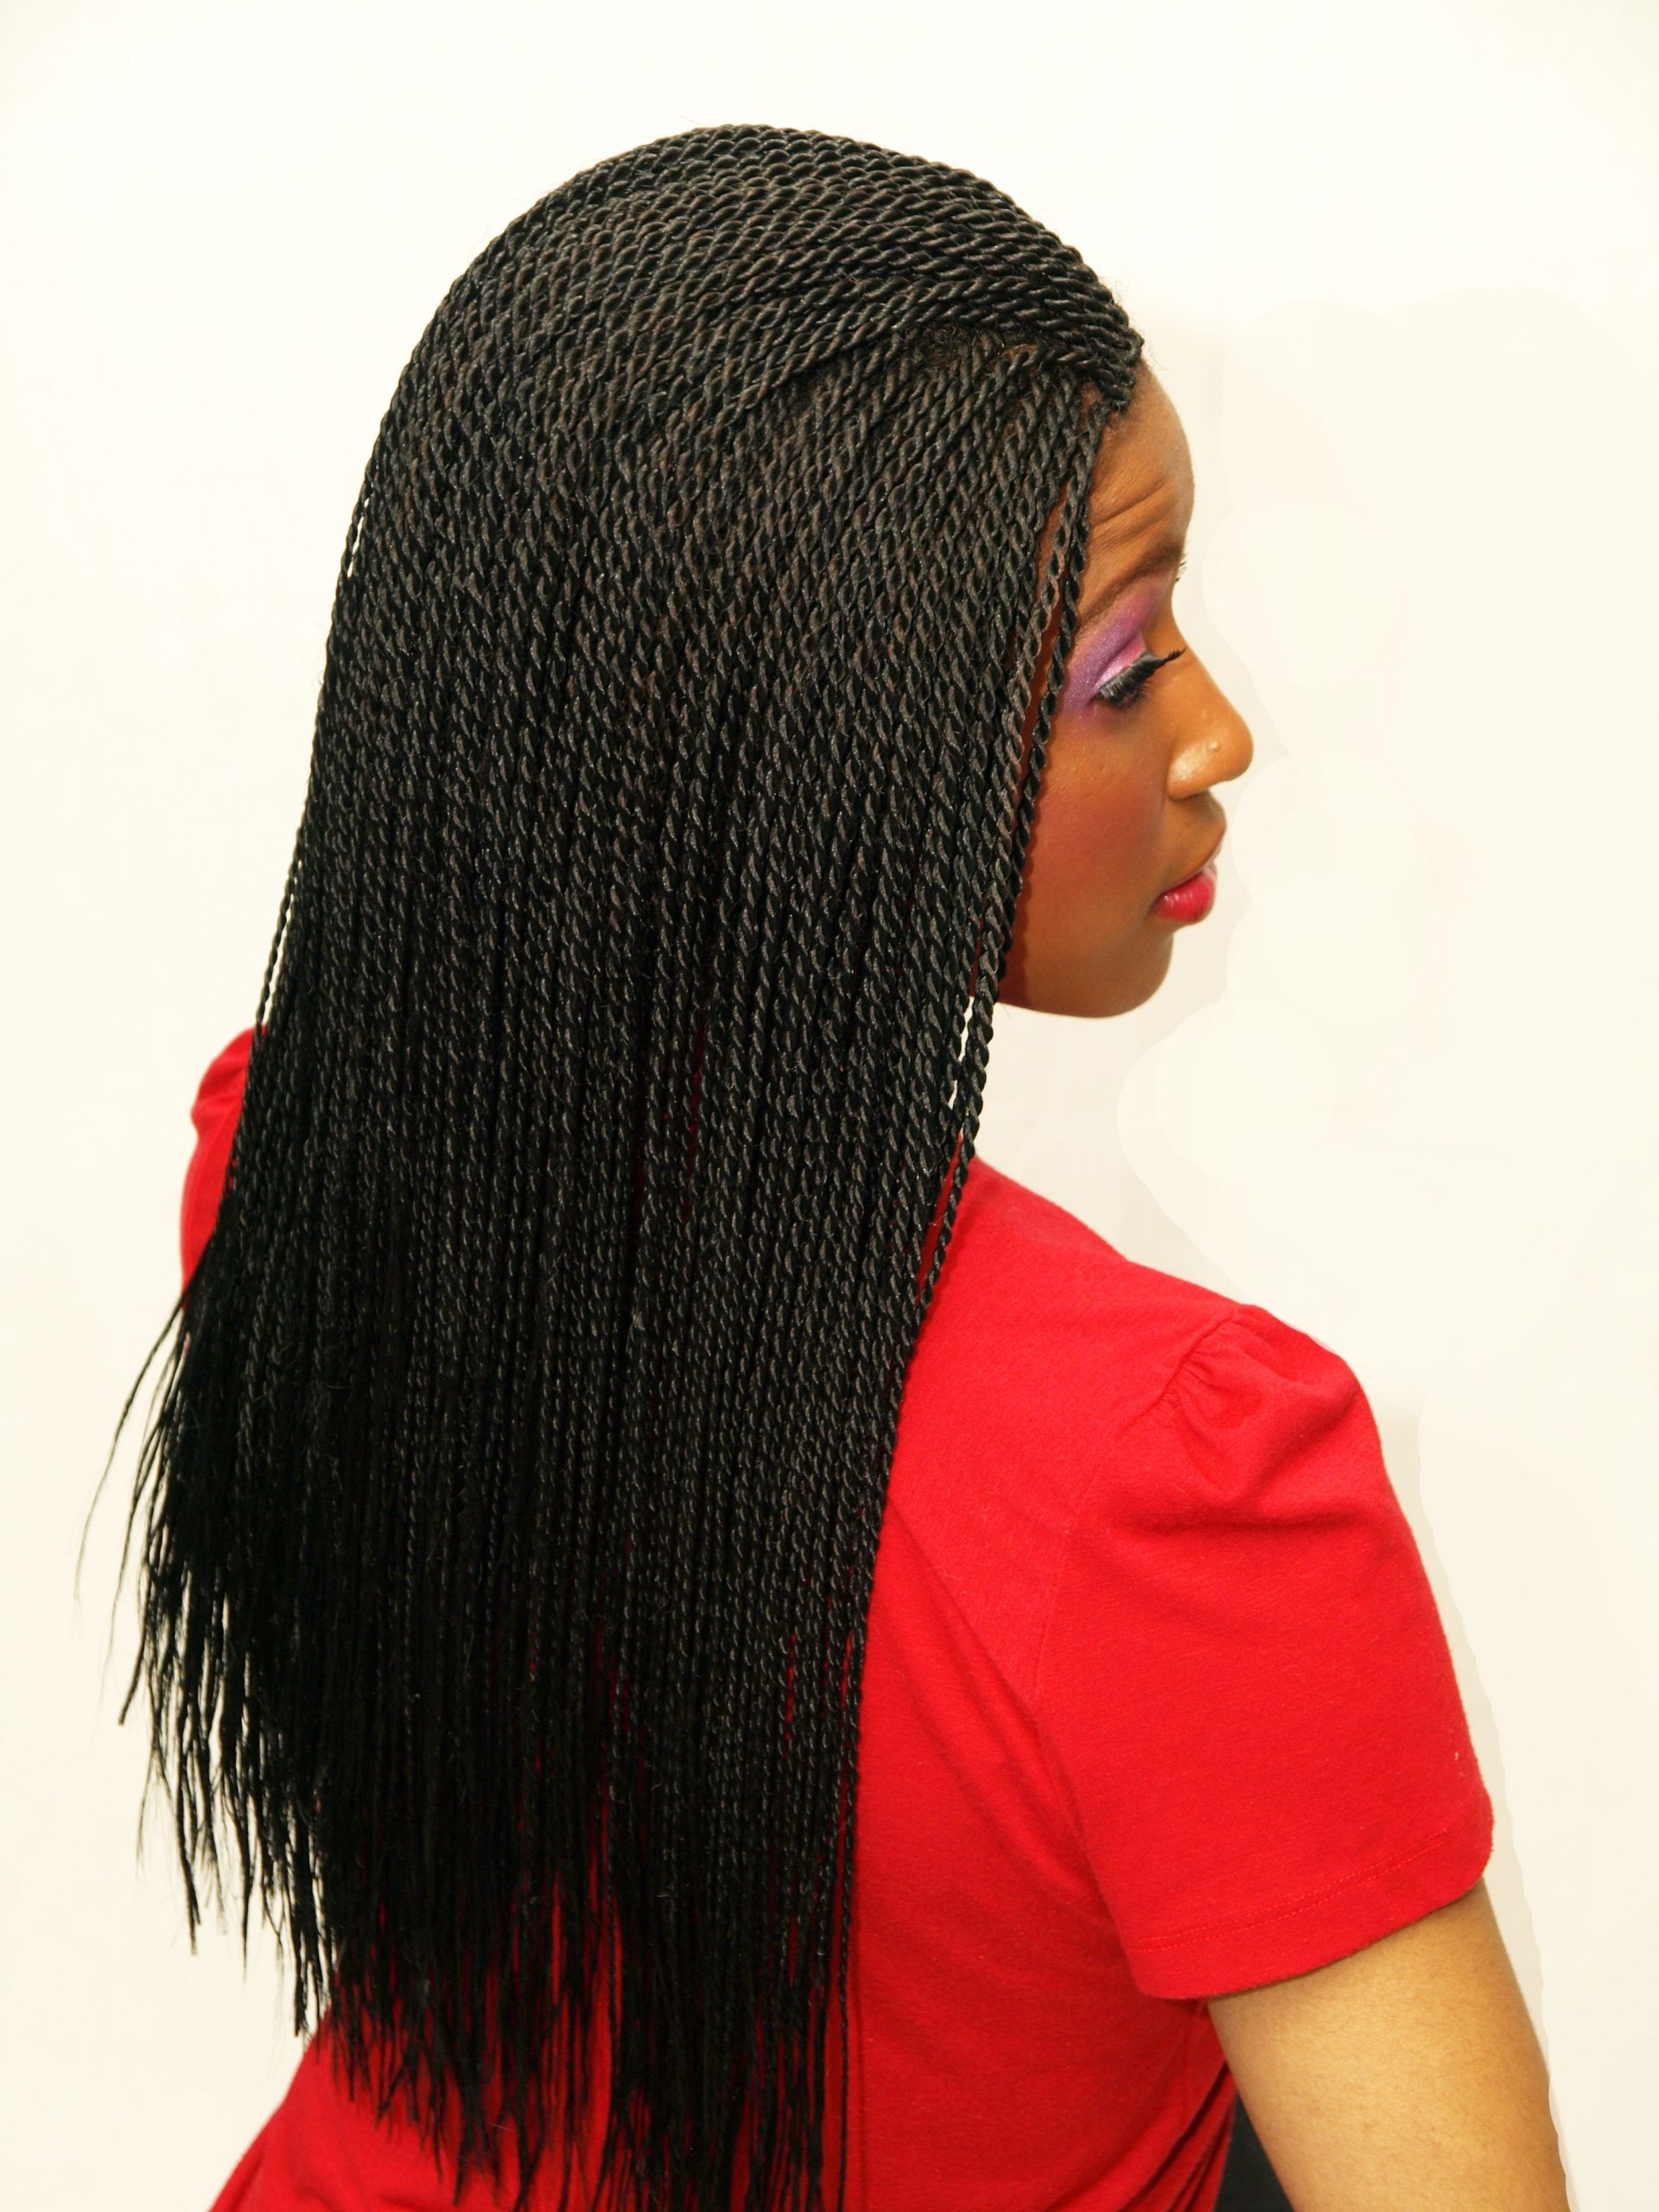 Twist Braids Hairstyles hairstyleforblackwomen.net 67 scaled